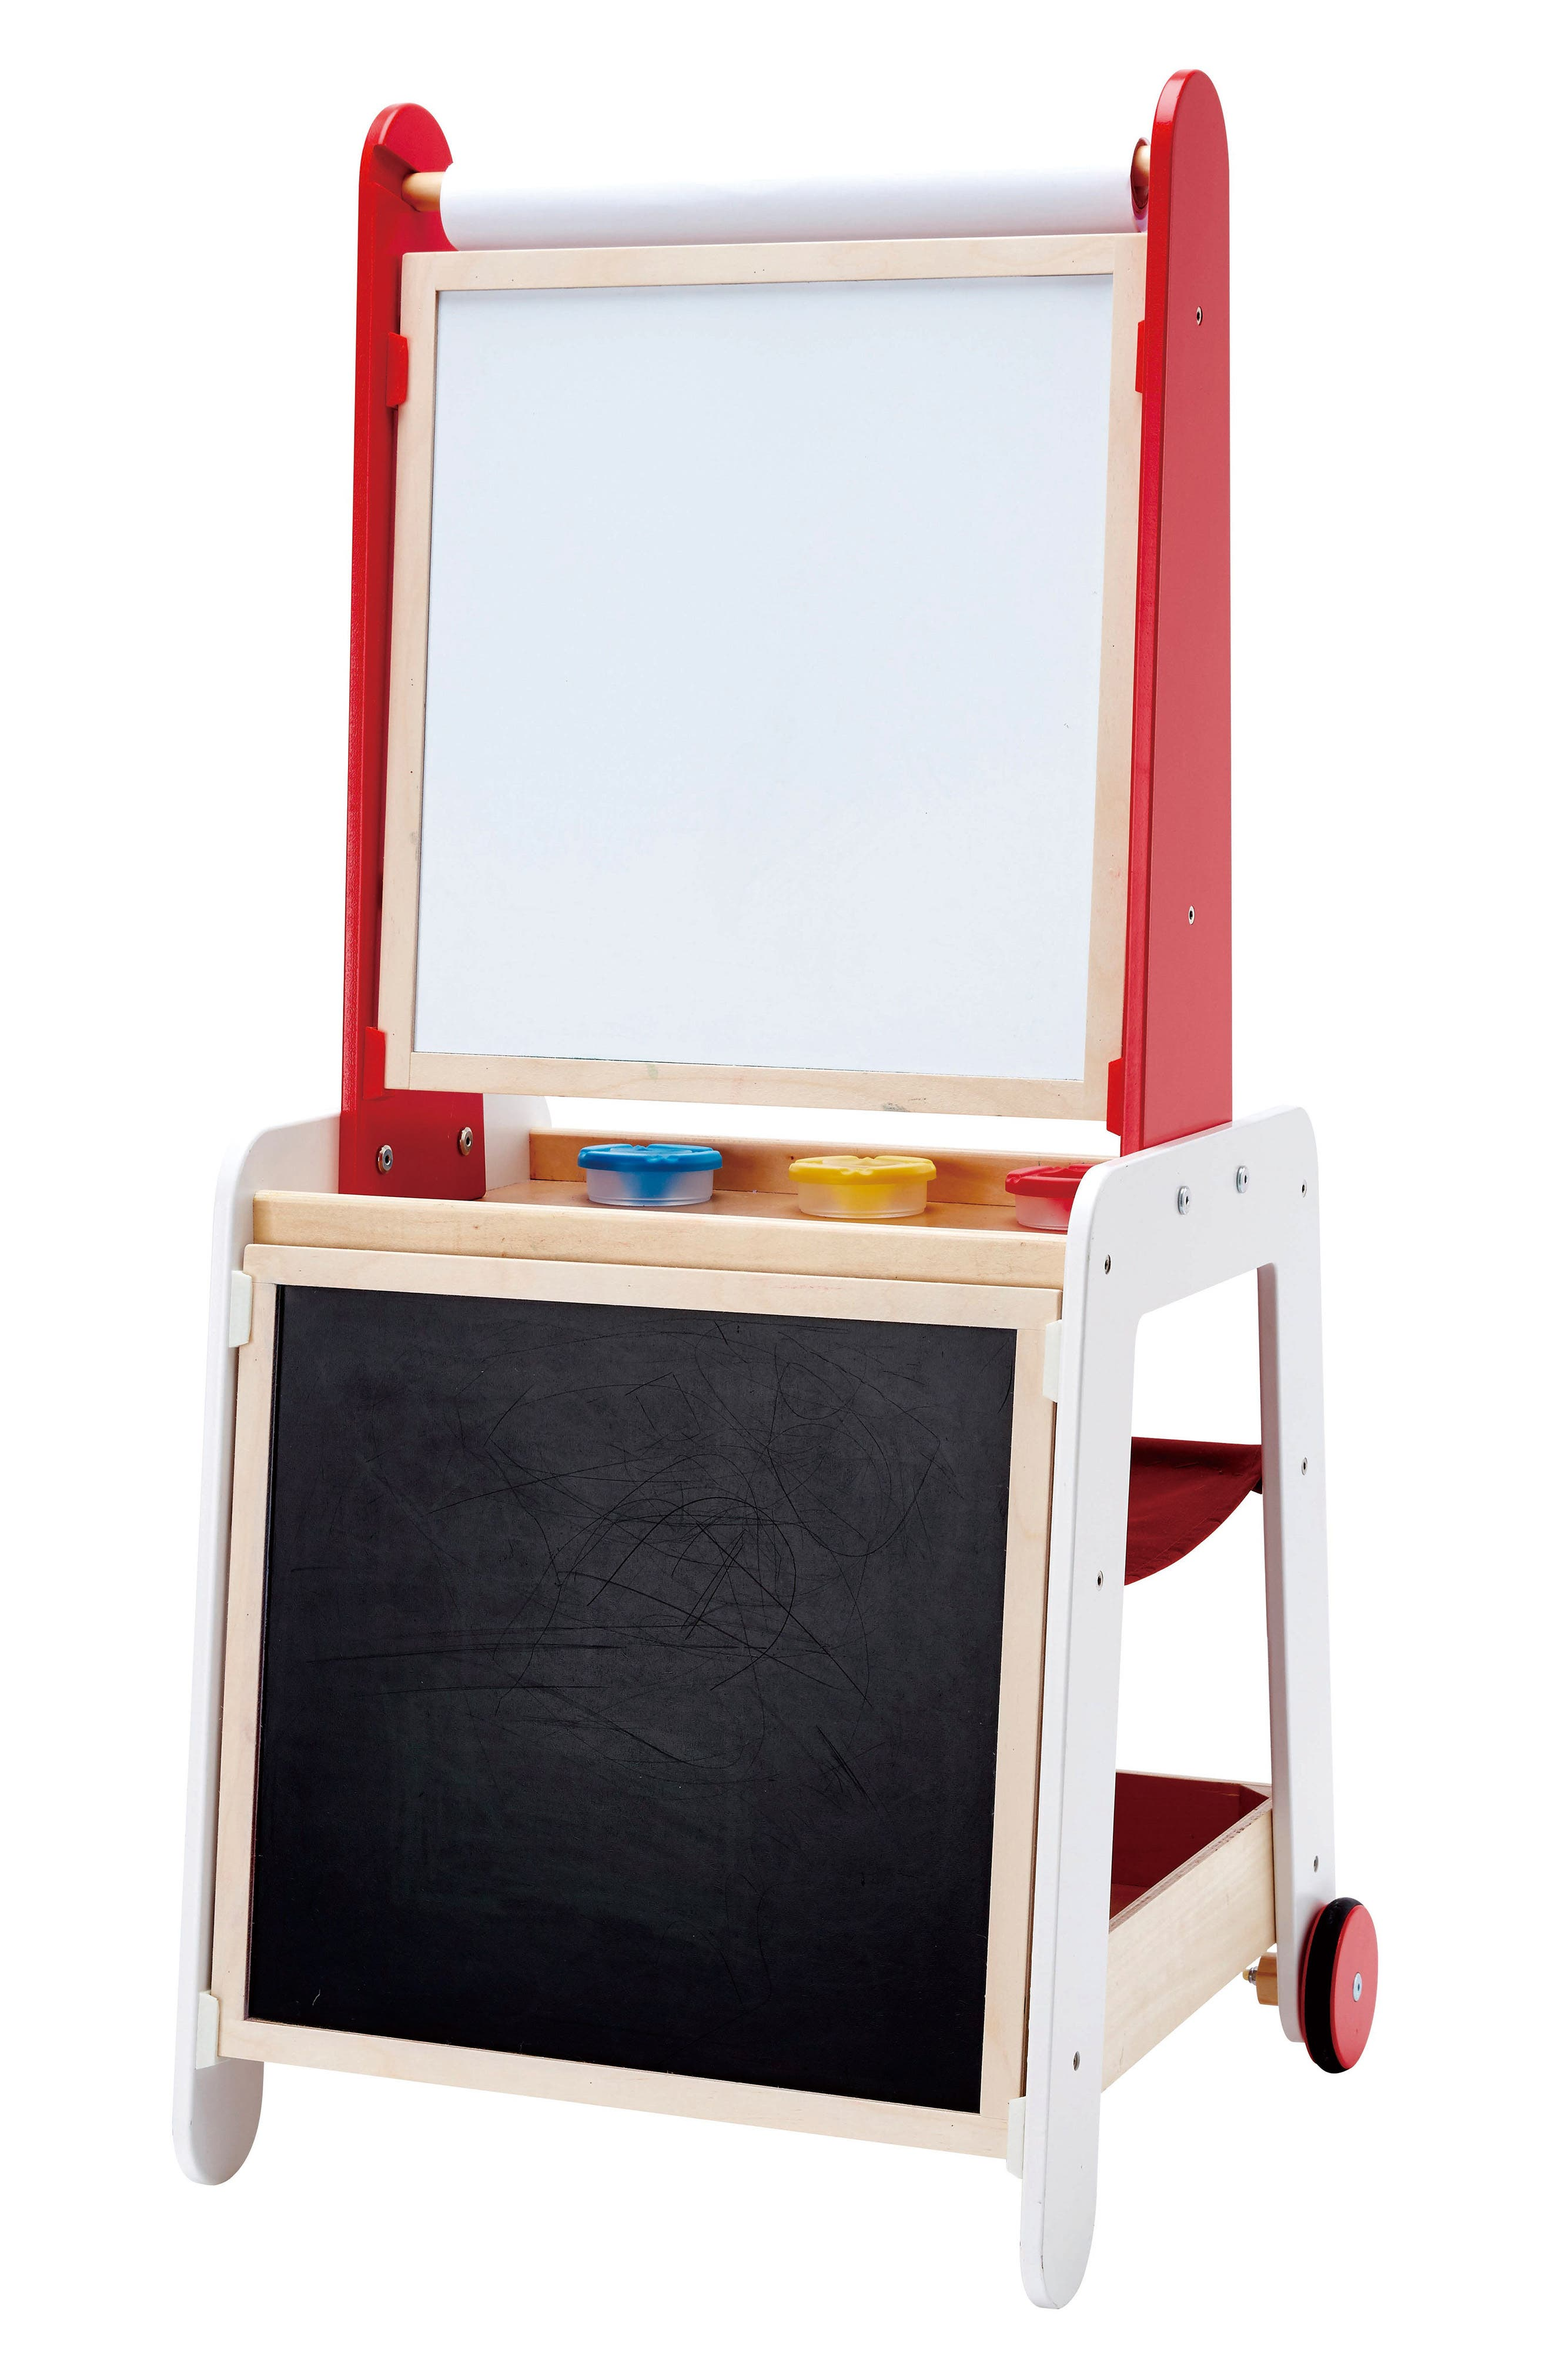 Create & Display Easel,                         Main,                         color, Red/ White